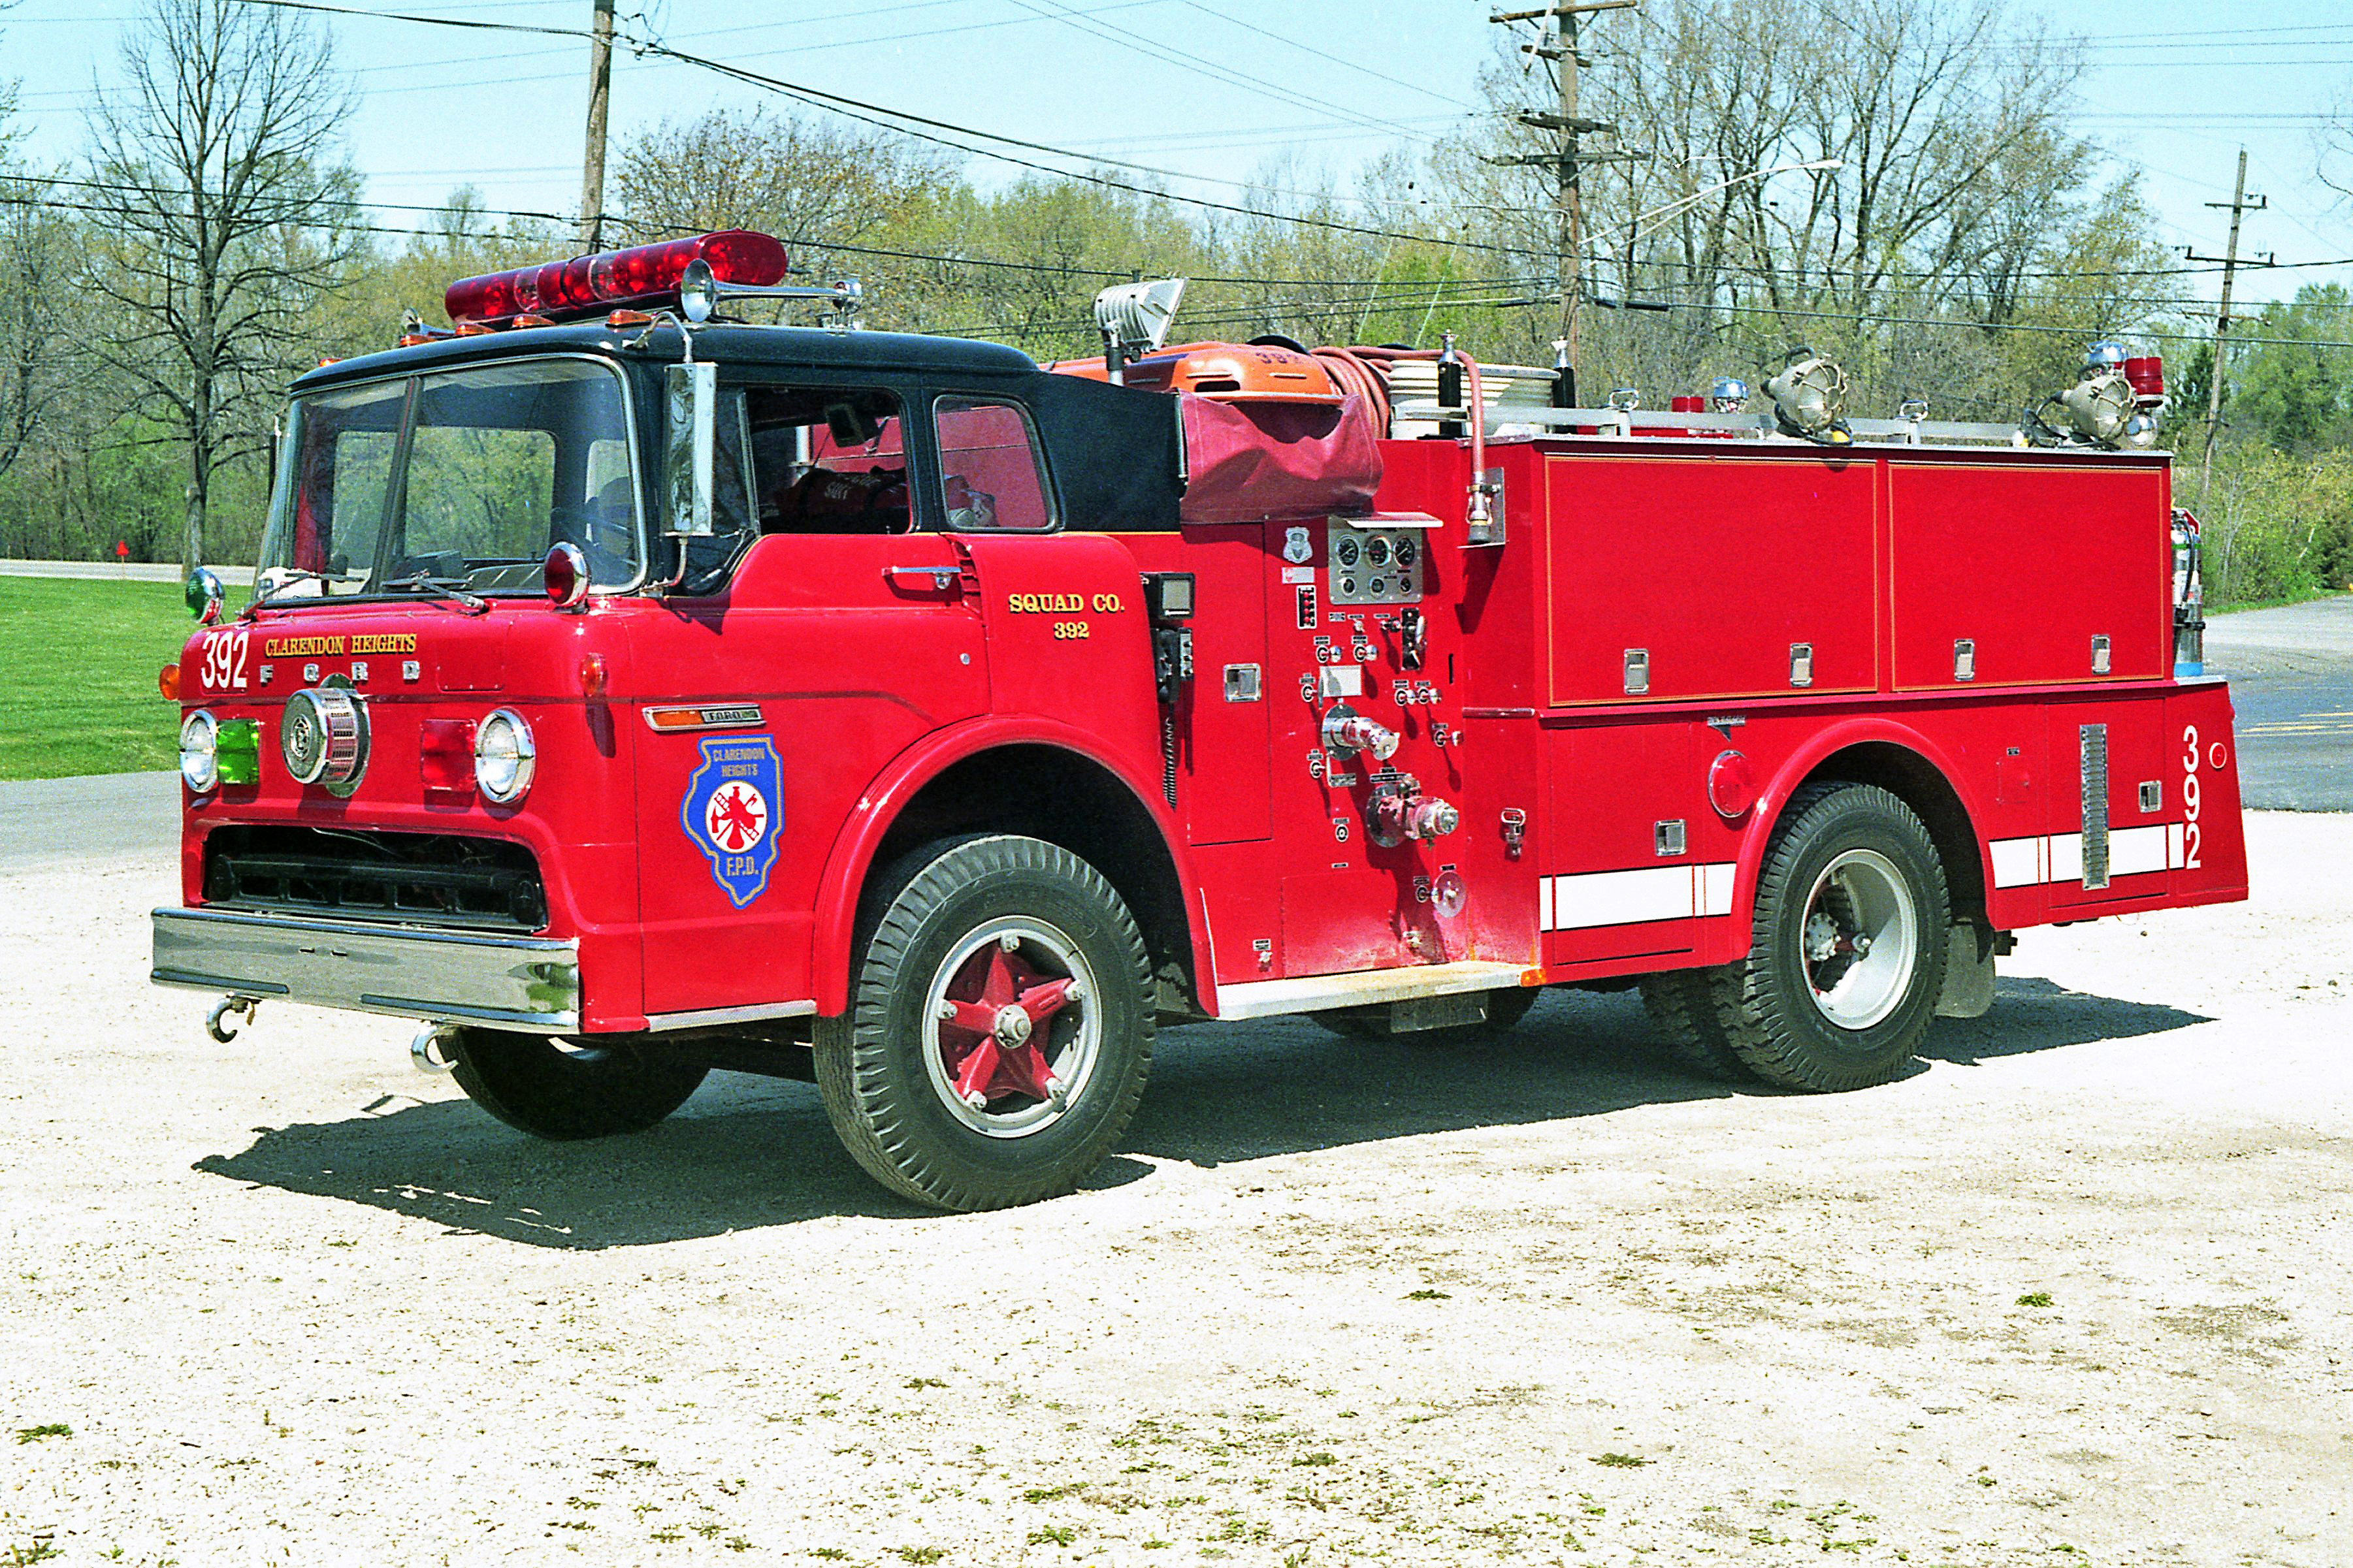 CLARENDON HEIGHTS SQUAD 392 1977 FORD C800 - HOWE 500-300 BLACK ROOF